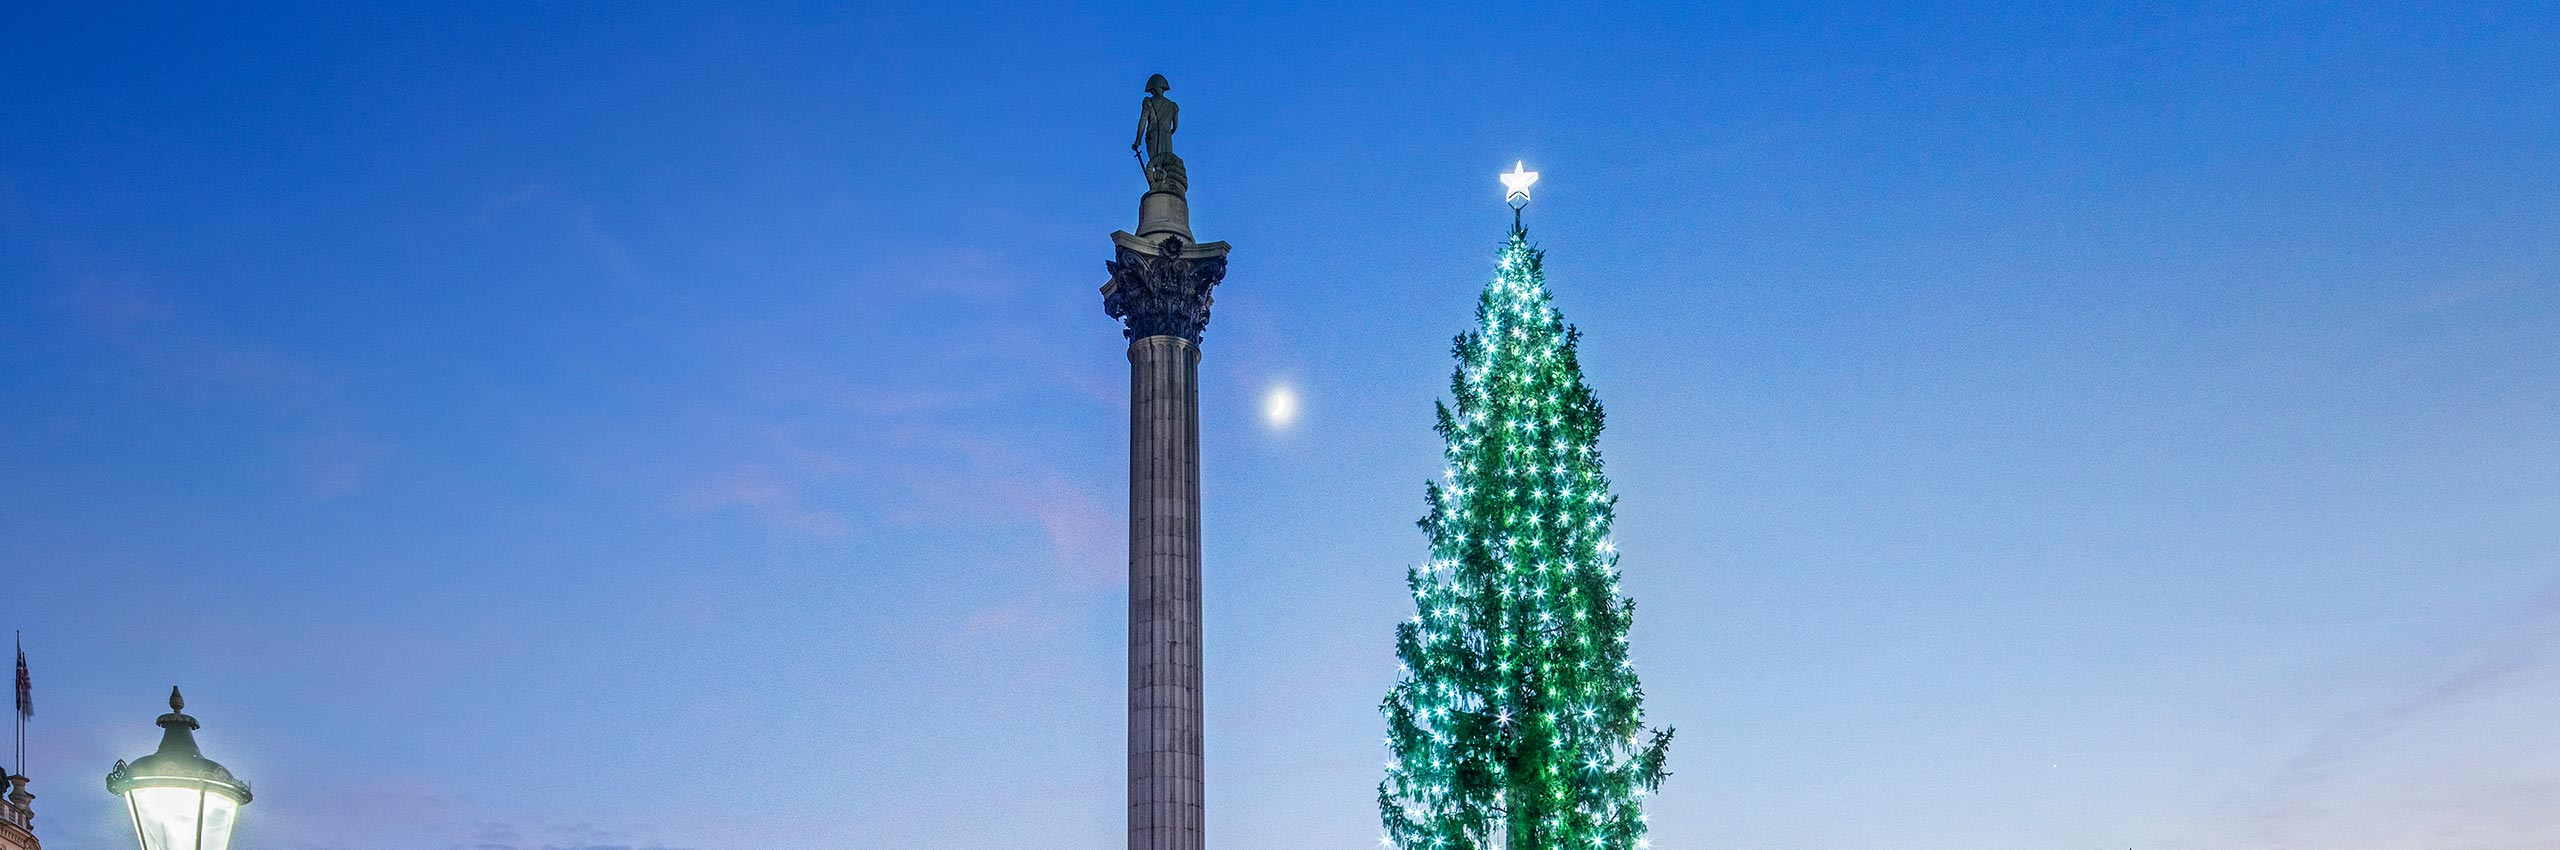 BVH-20643866 | UK/London, Christmas Tree on Trafalgar Square with Admiral Lord Nelson Column in December | © Reinhard Schmid/4Corners